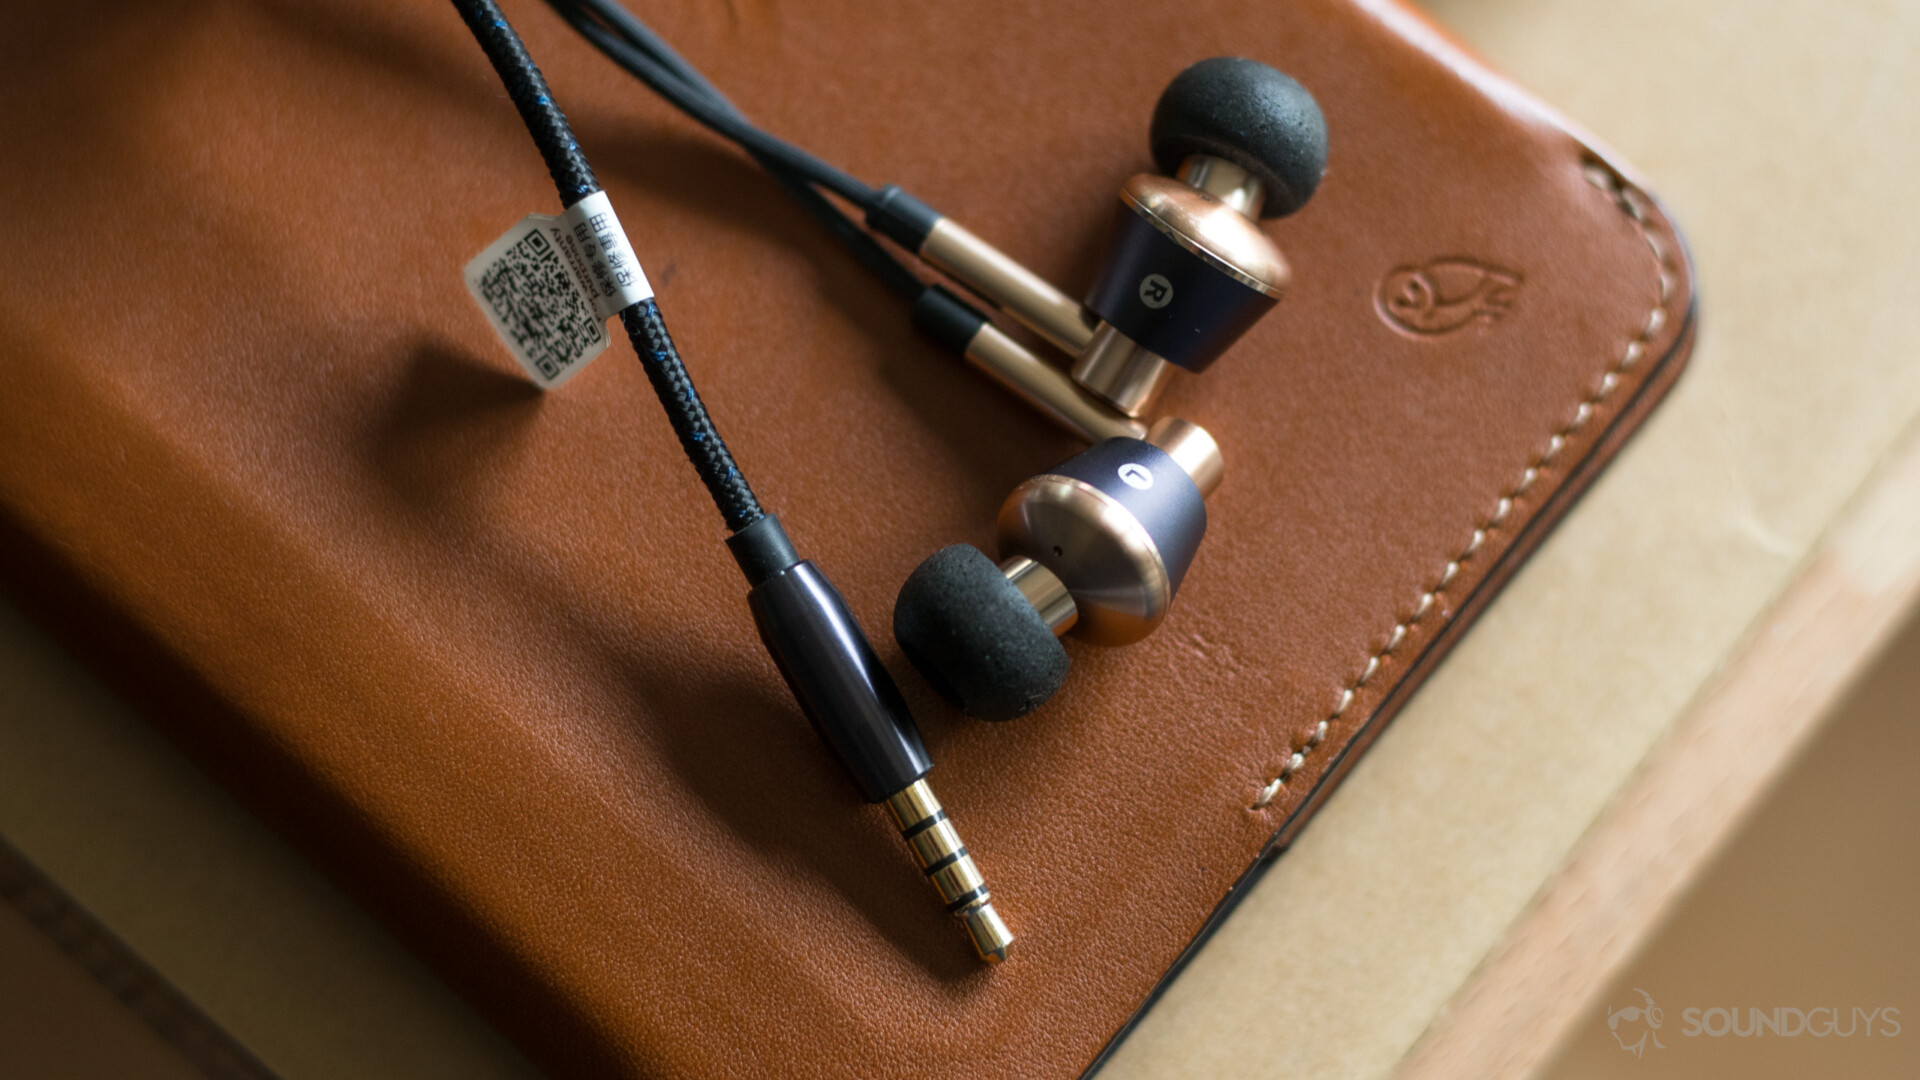 Samsung Galaxy S10 headphone: 1More Triple Driver In-Ear on a leather surface.